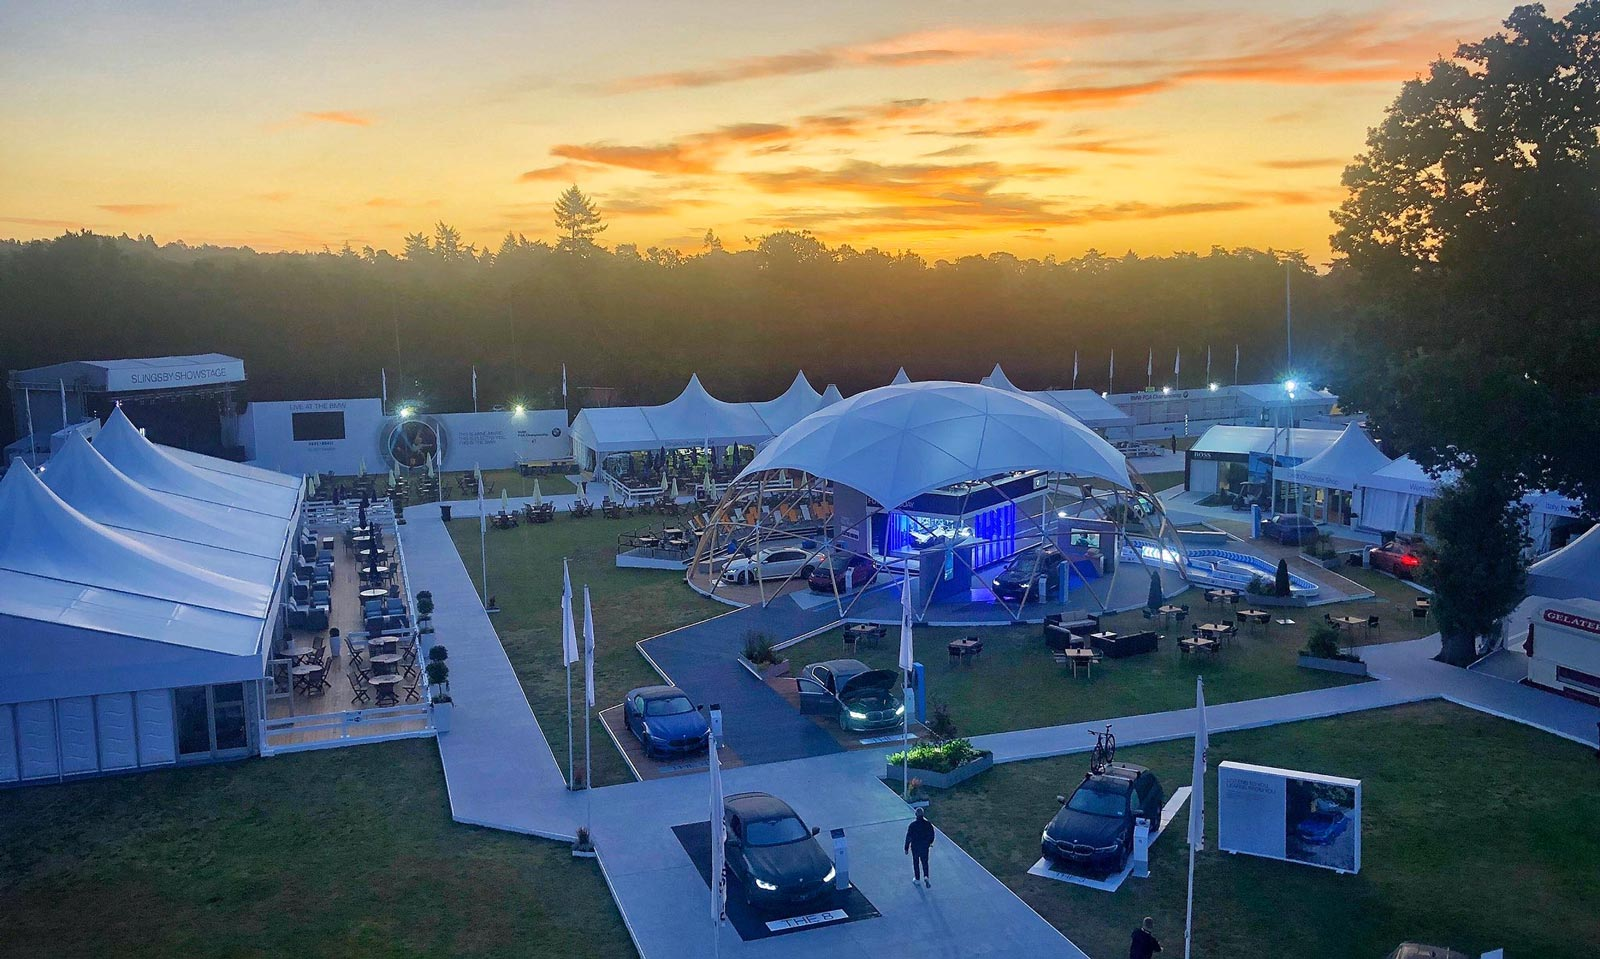 BMW interactive touchscreen software displayed at PGA Championship event at sunset